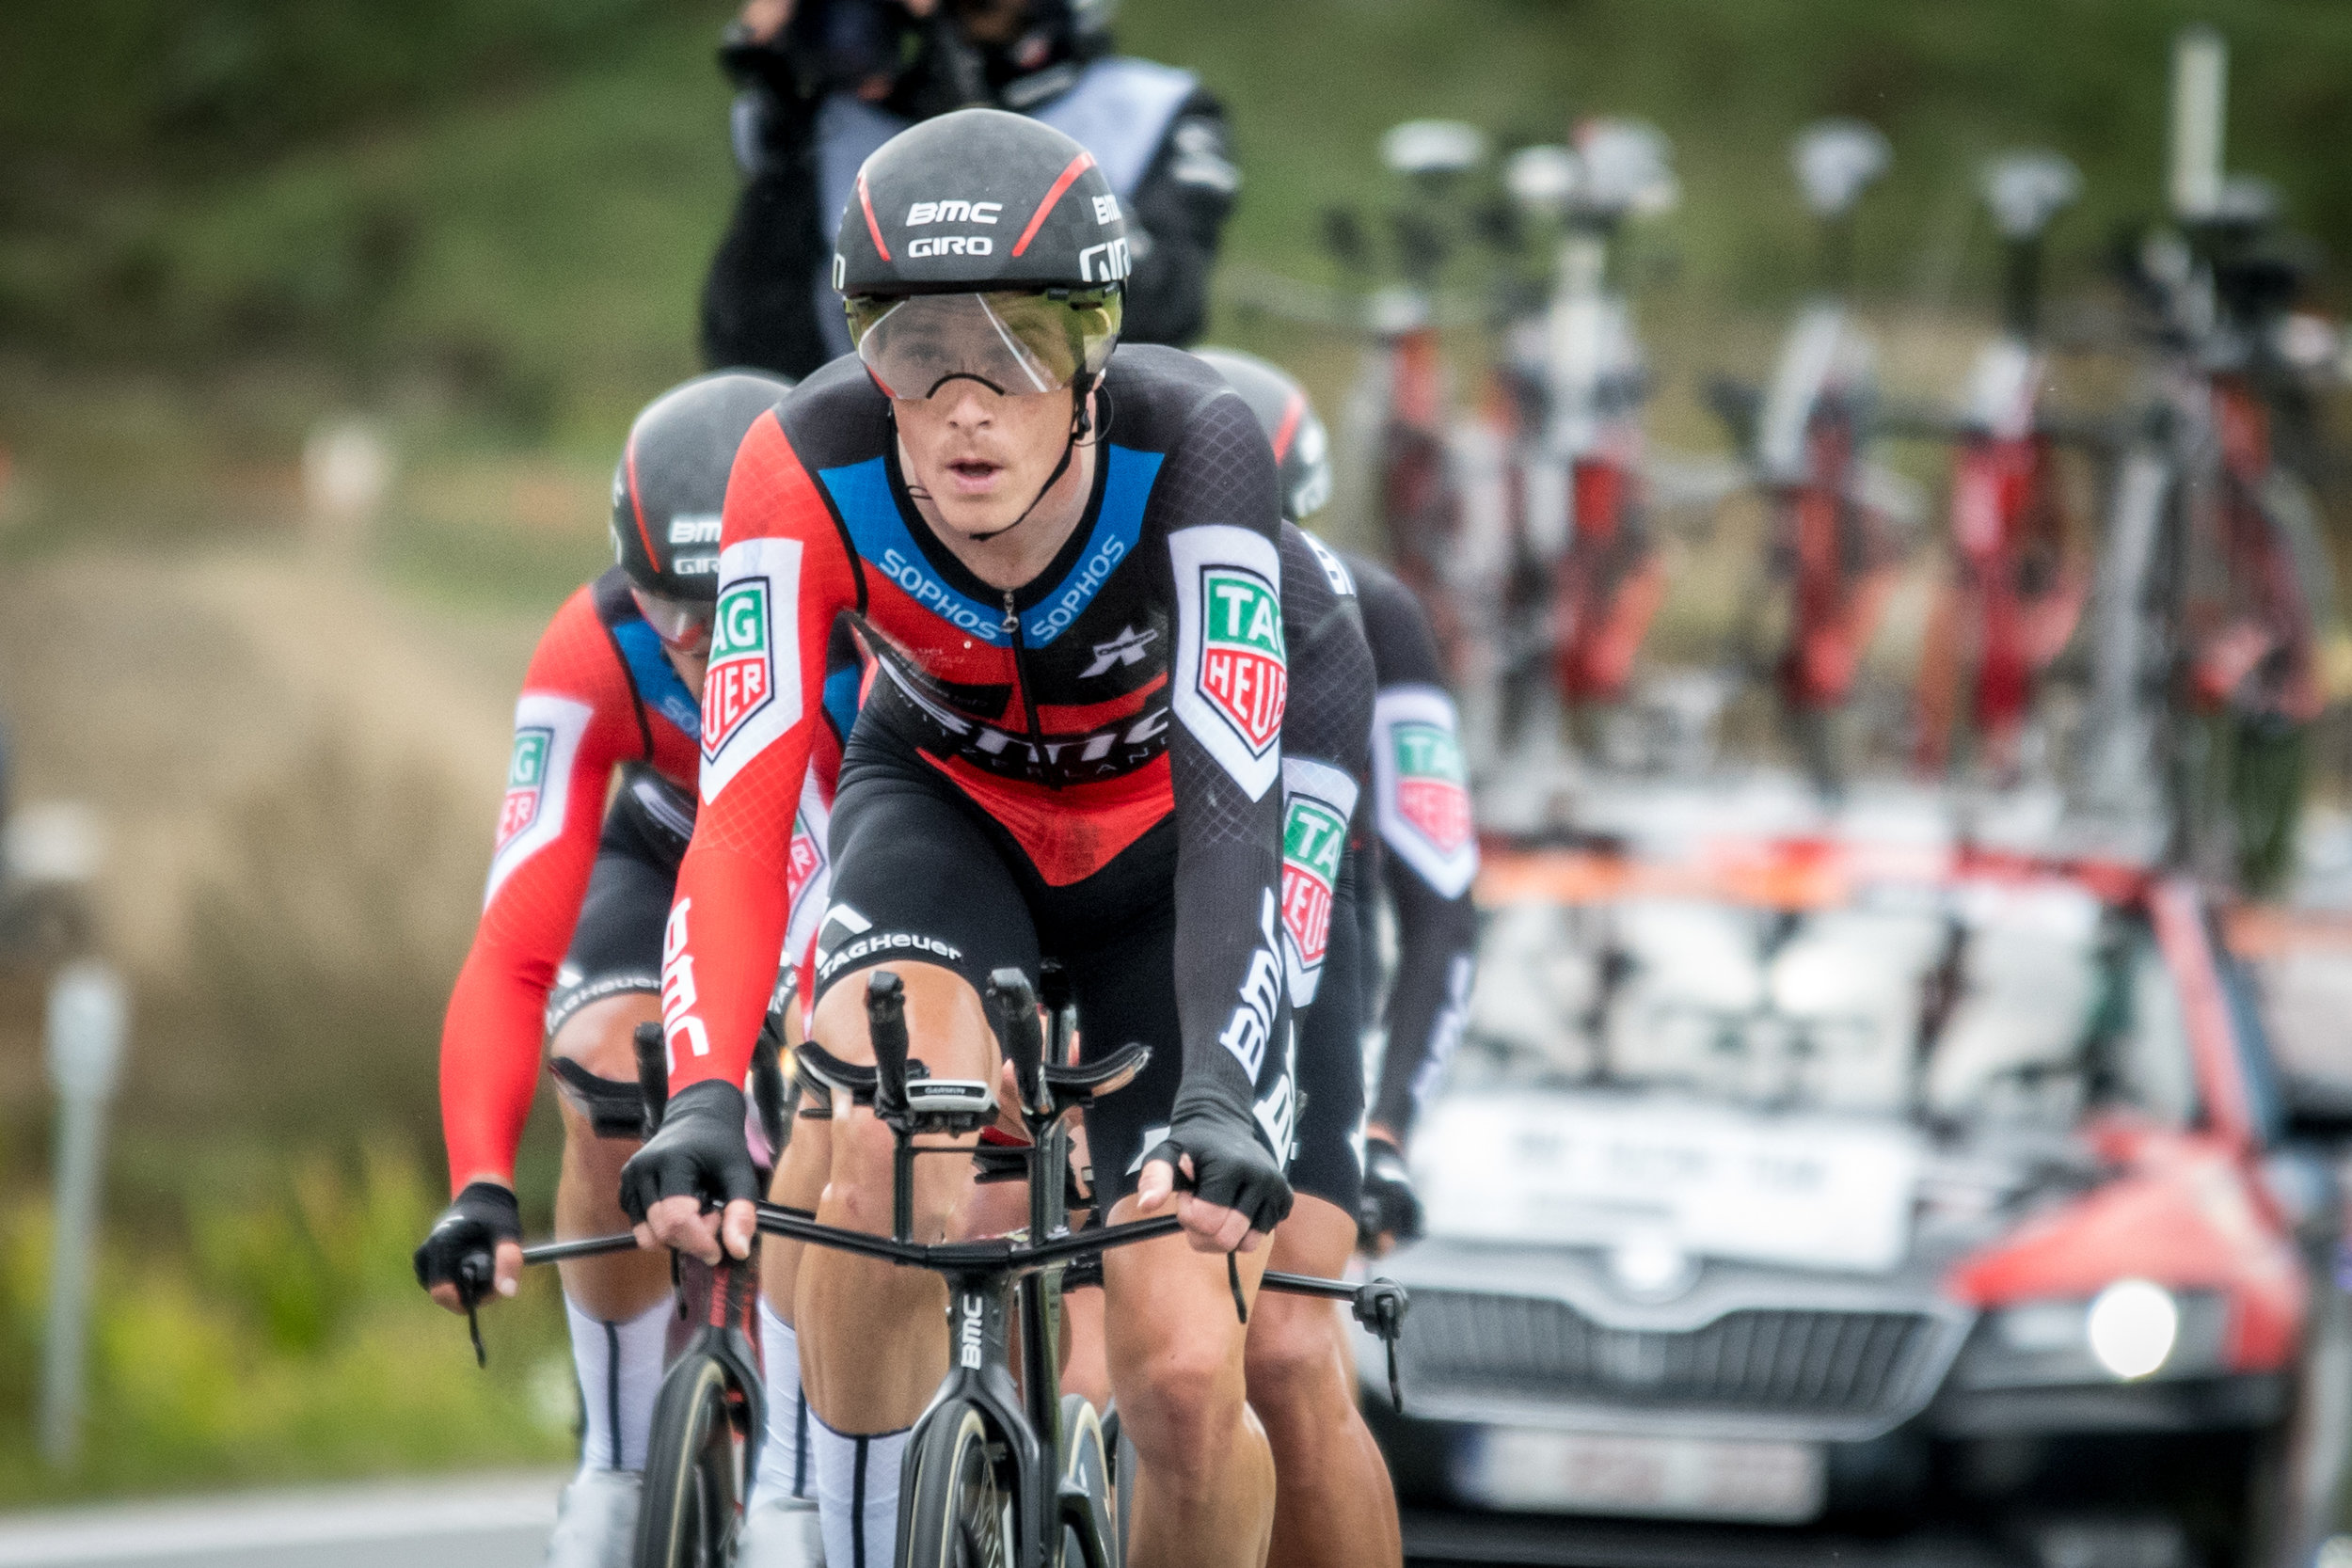 Even with Rohan Dennis, there was no fairytale ending for BMC Racing Team in the men's TTT. They came away with the bronze medal.